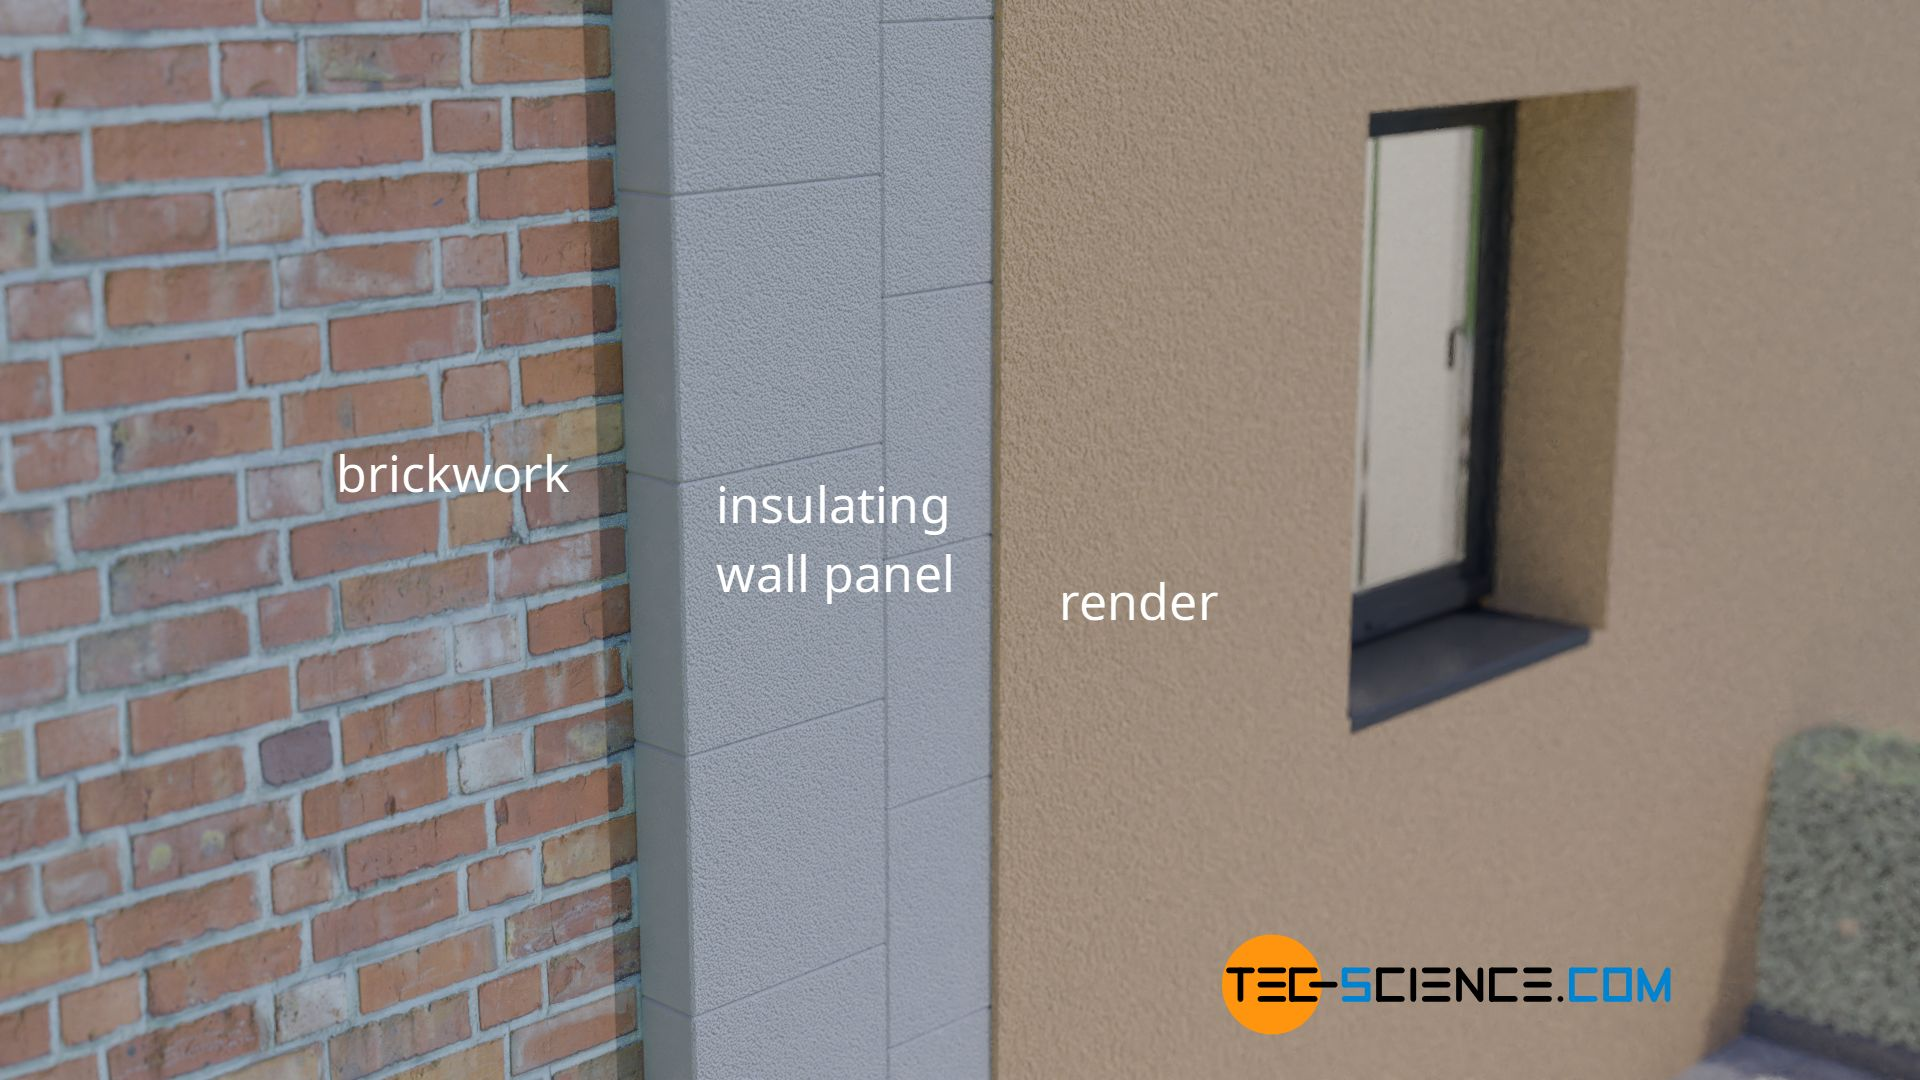 Insulating wall panels on the brickwork of a building